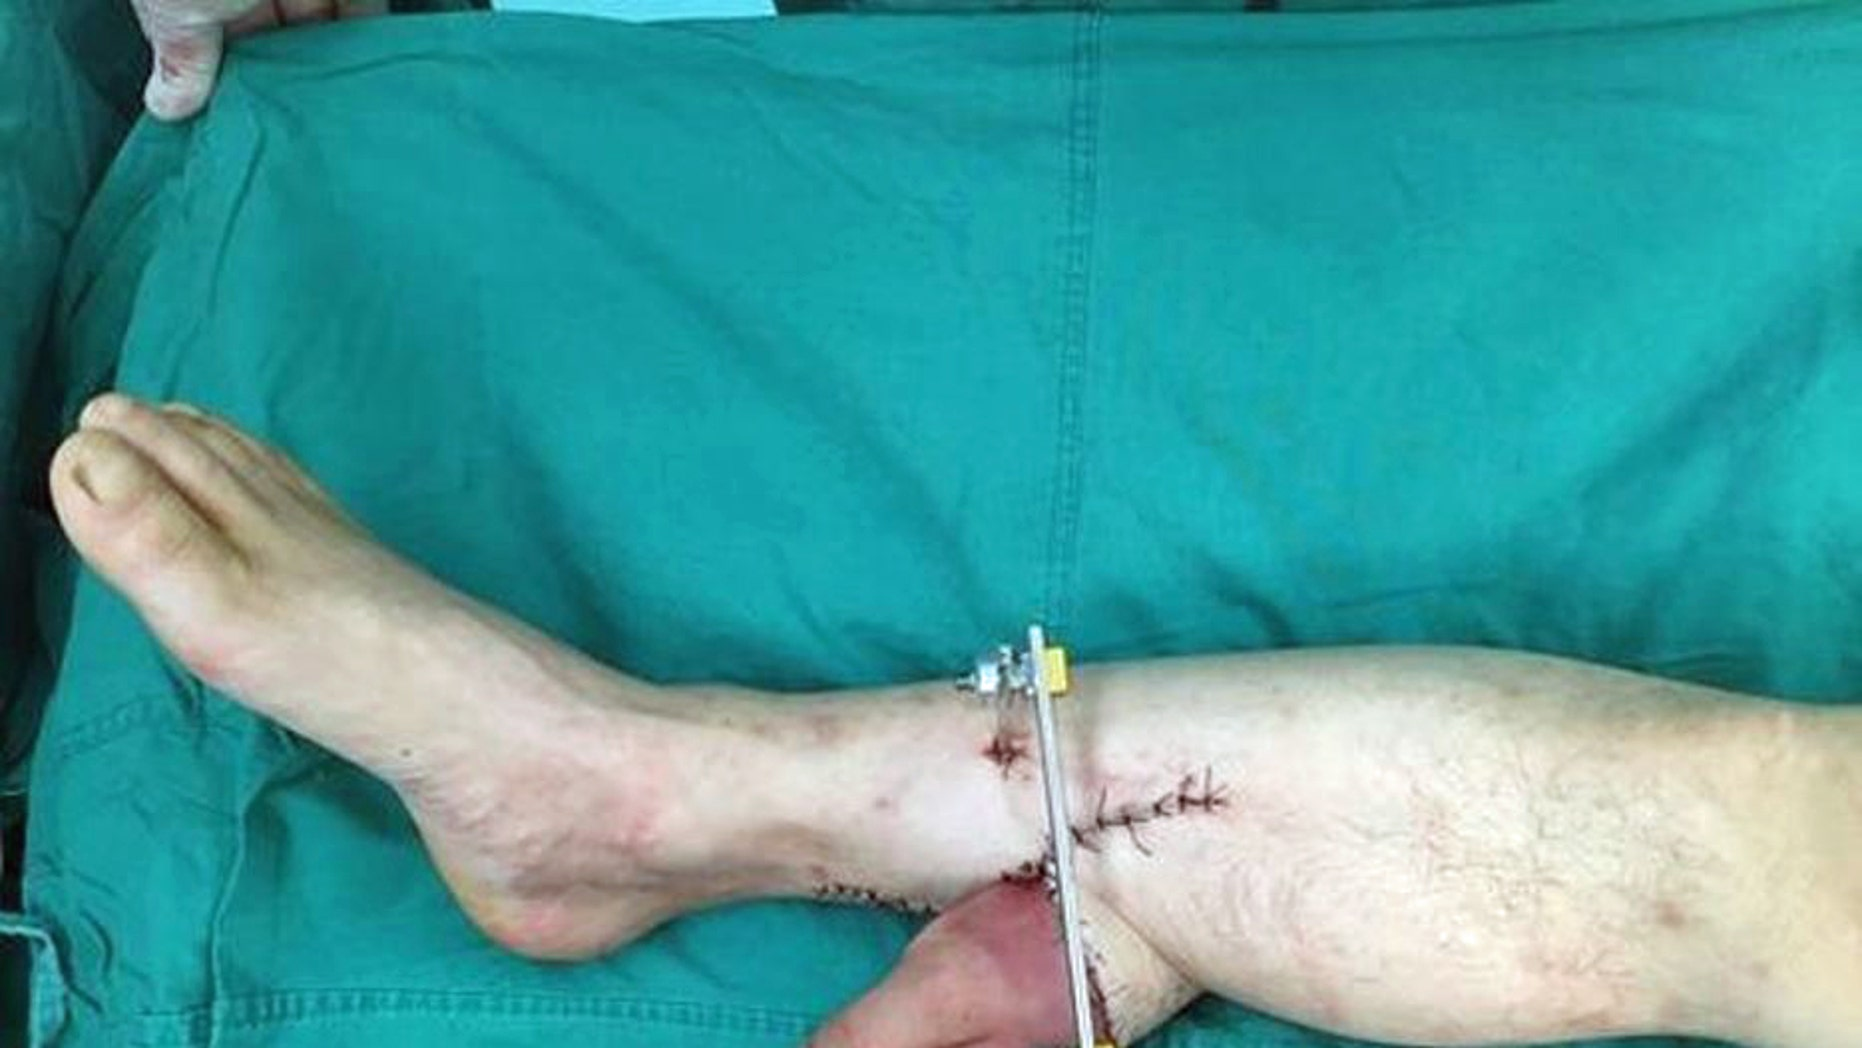 Doctors performed an extraordinary operation to save a mans severed hand by attaching it to his leg.